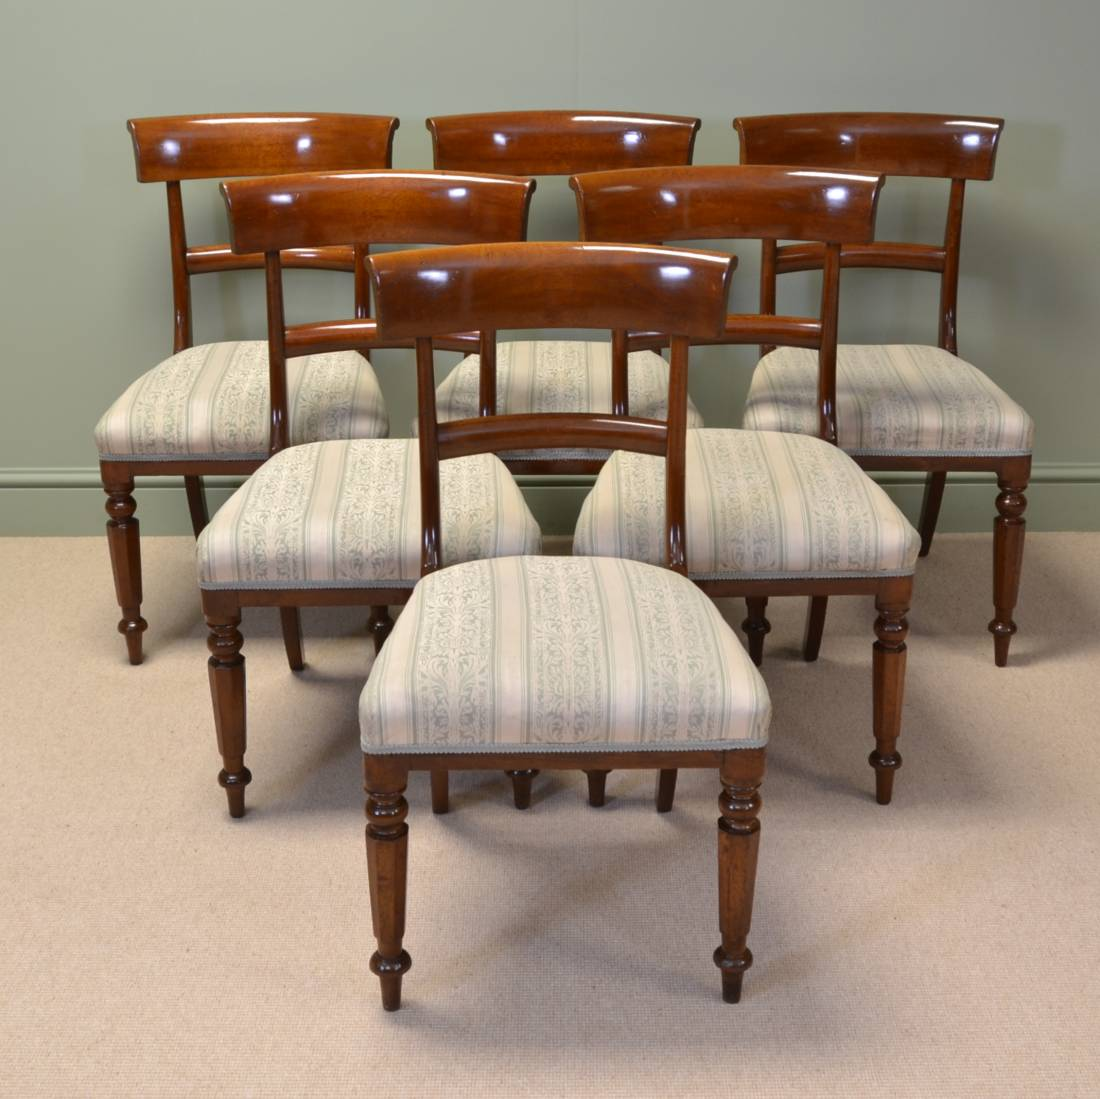 hd wallpapers antique dining chairs uk